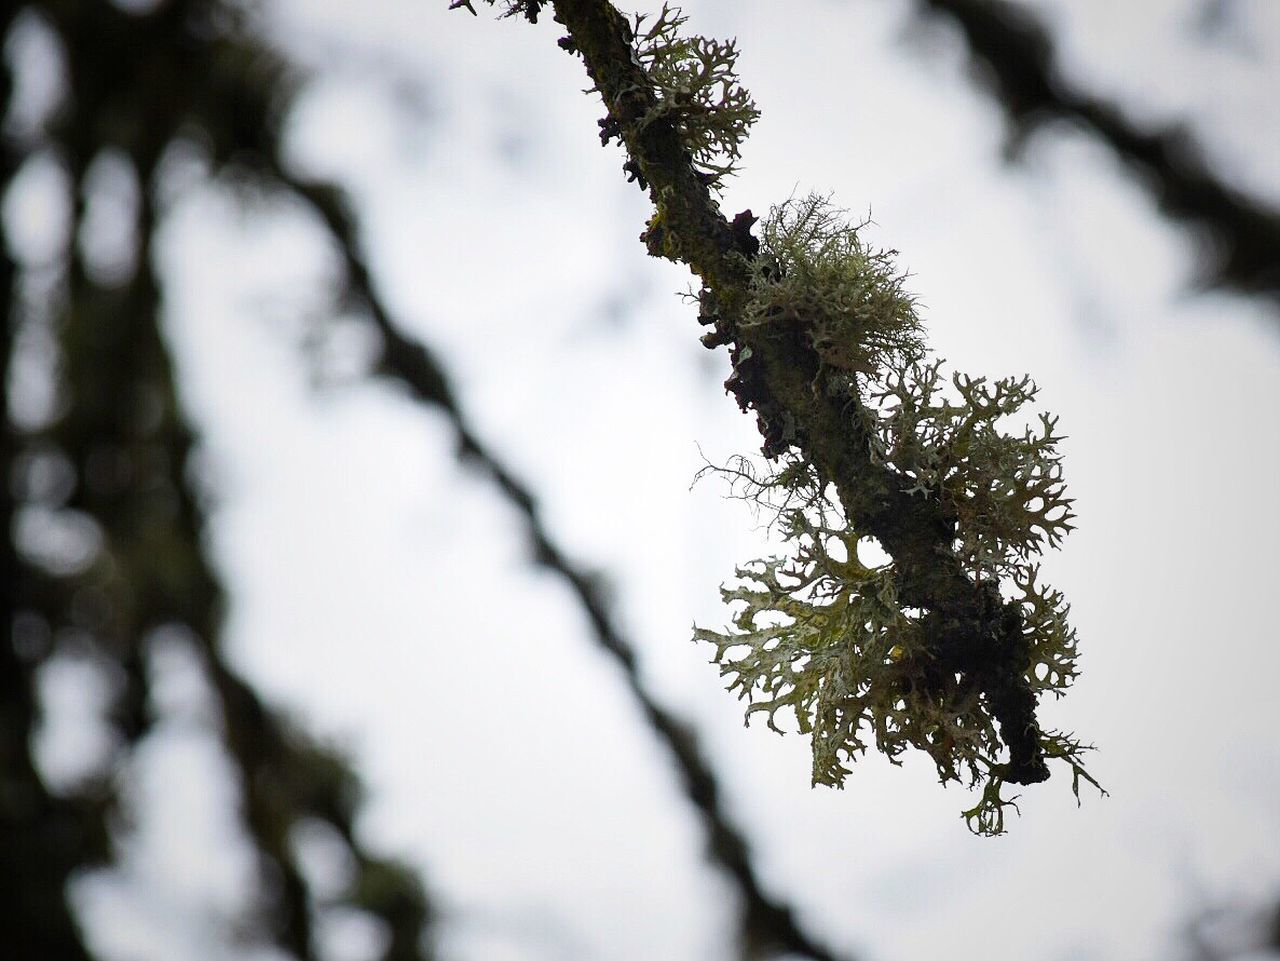 Nature Growth Low Angle View Branch Beauty In Nature Tree Close-up Outdoors No People Flower Day Fragility Freshness Sky Spring Springtime Plant Beauty In Nature Nature Growth Tree Moss & Lichen Moss Mossy Branches